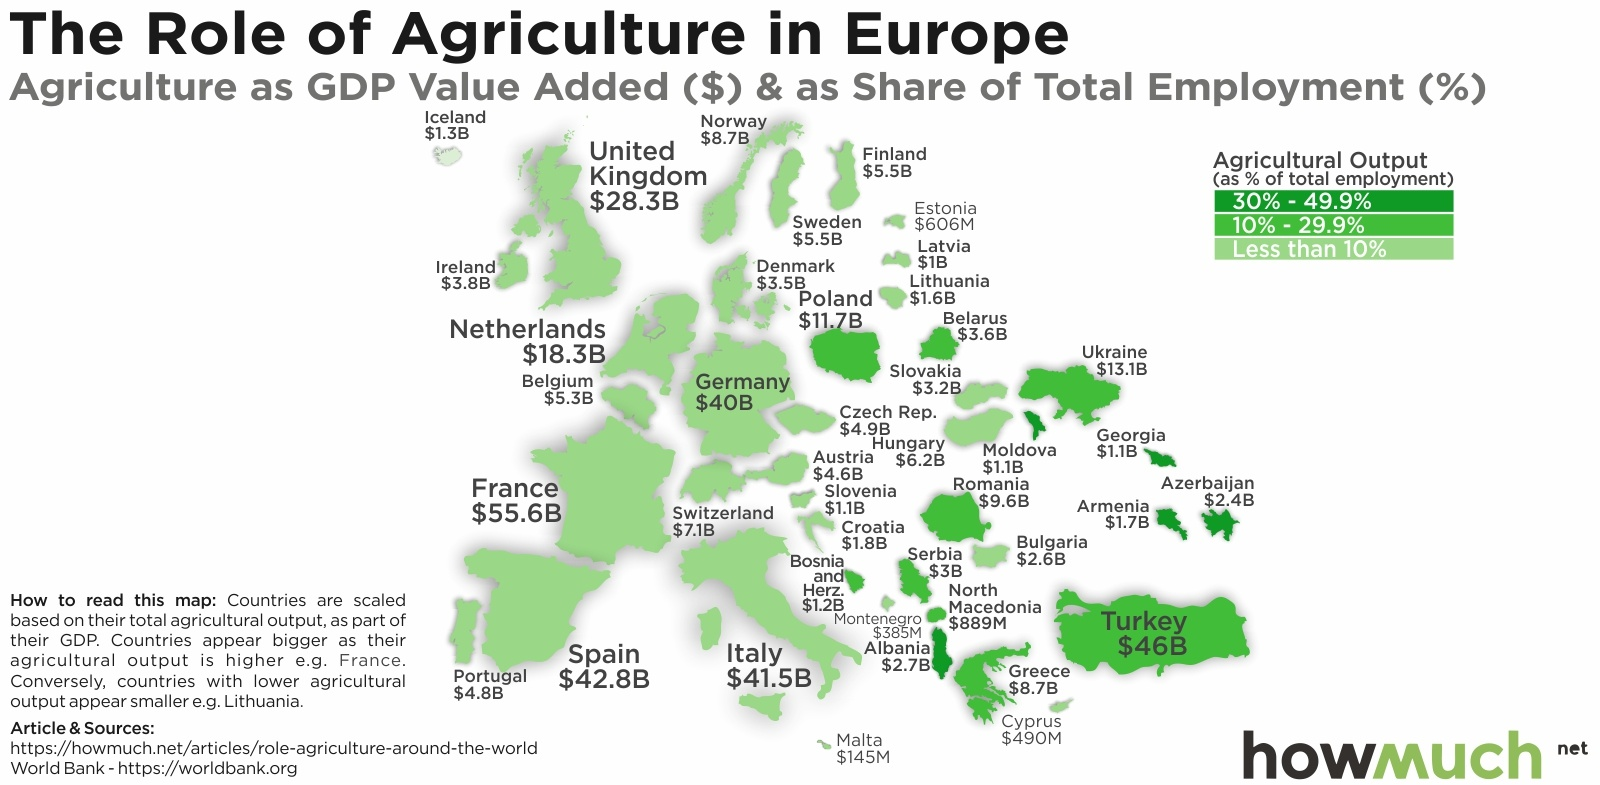 agriculture as a share of GDP in europe